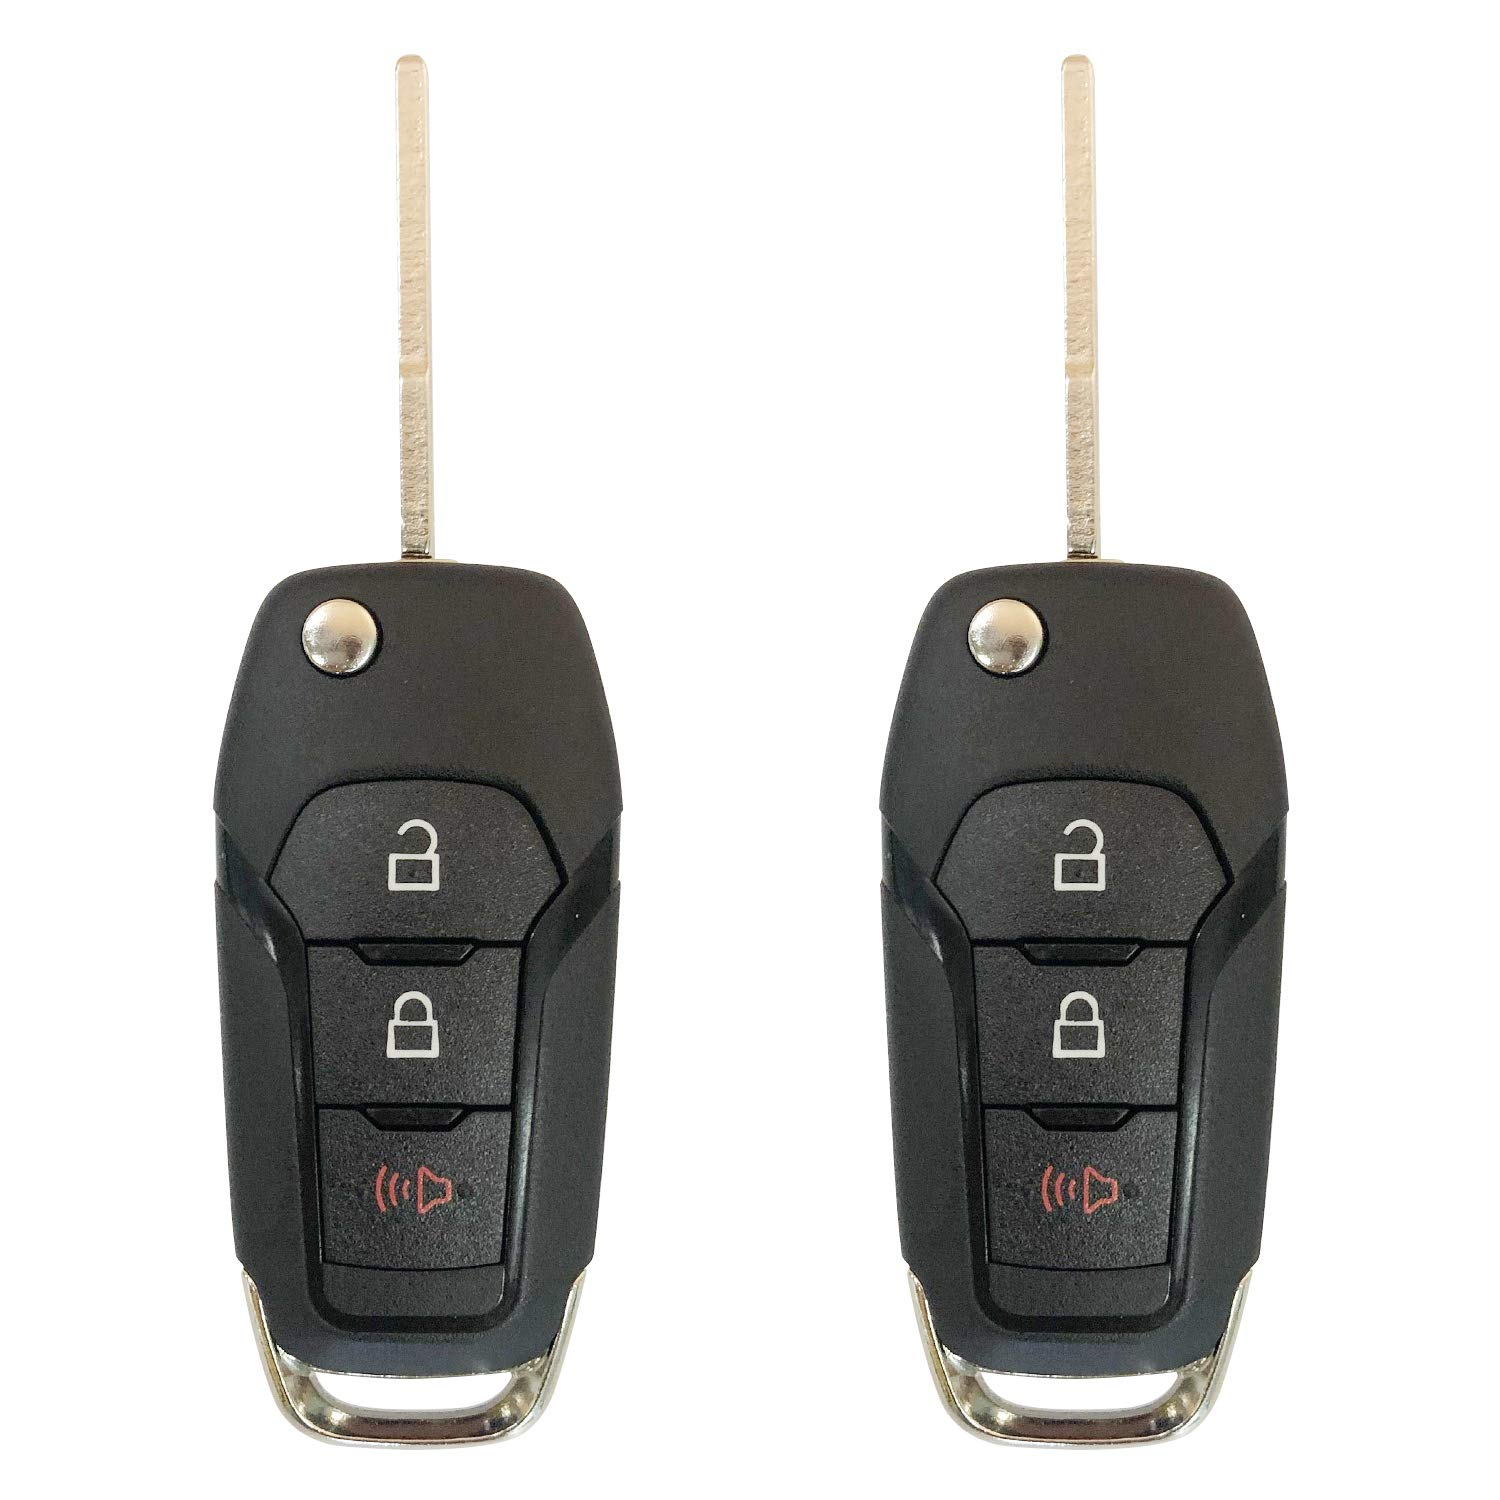 Replacement For 2015-2019 Ford F-150 F-250 350 Keyless Remote Flip Key Fob 164-R8130 N5F-A08TAA;by AUTO KEY MAX (PAIR)